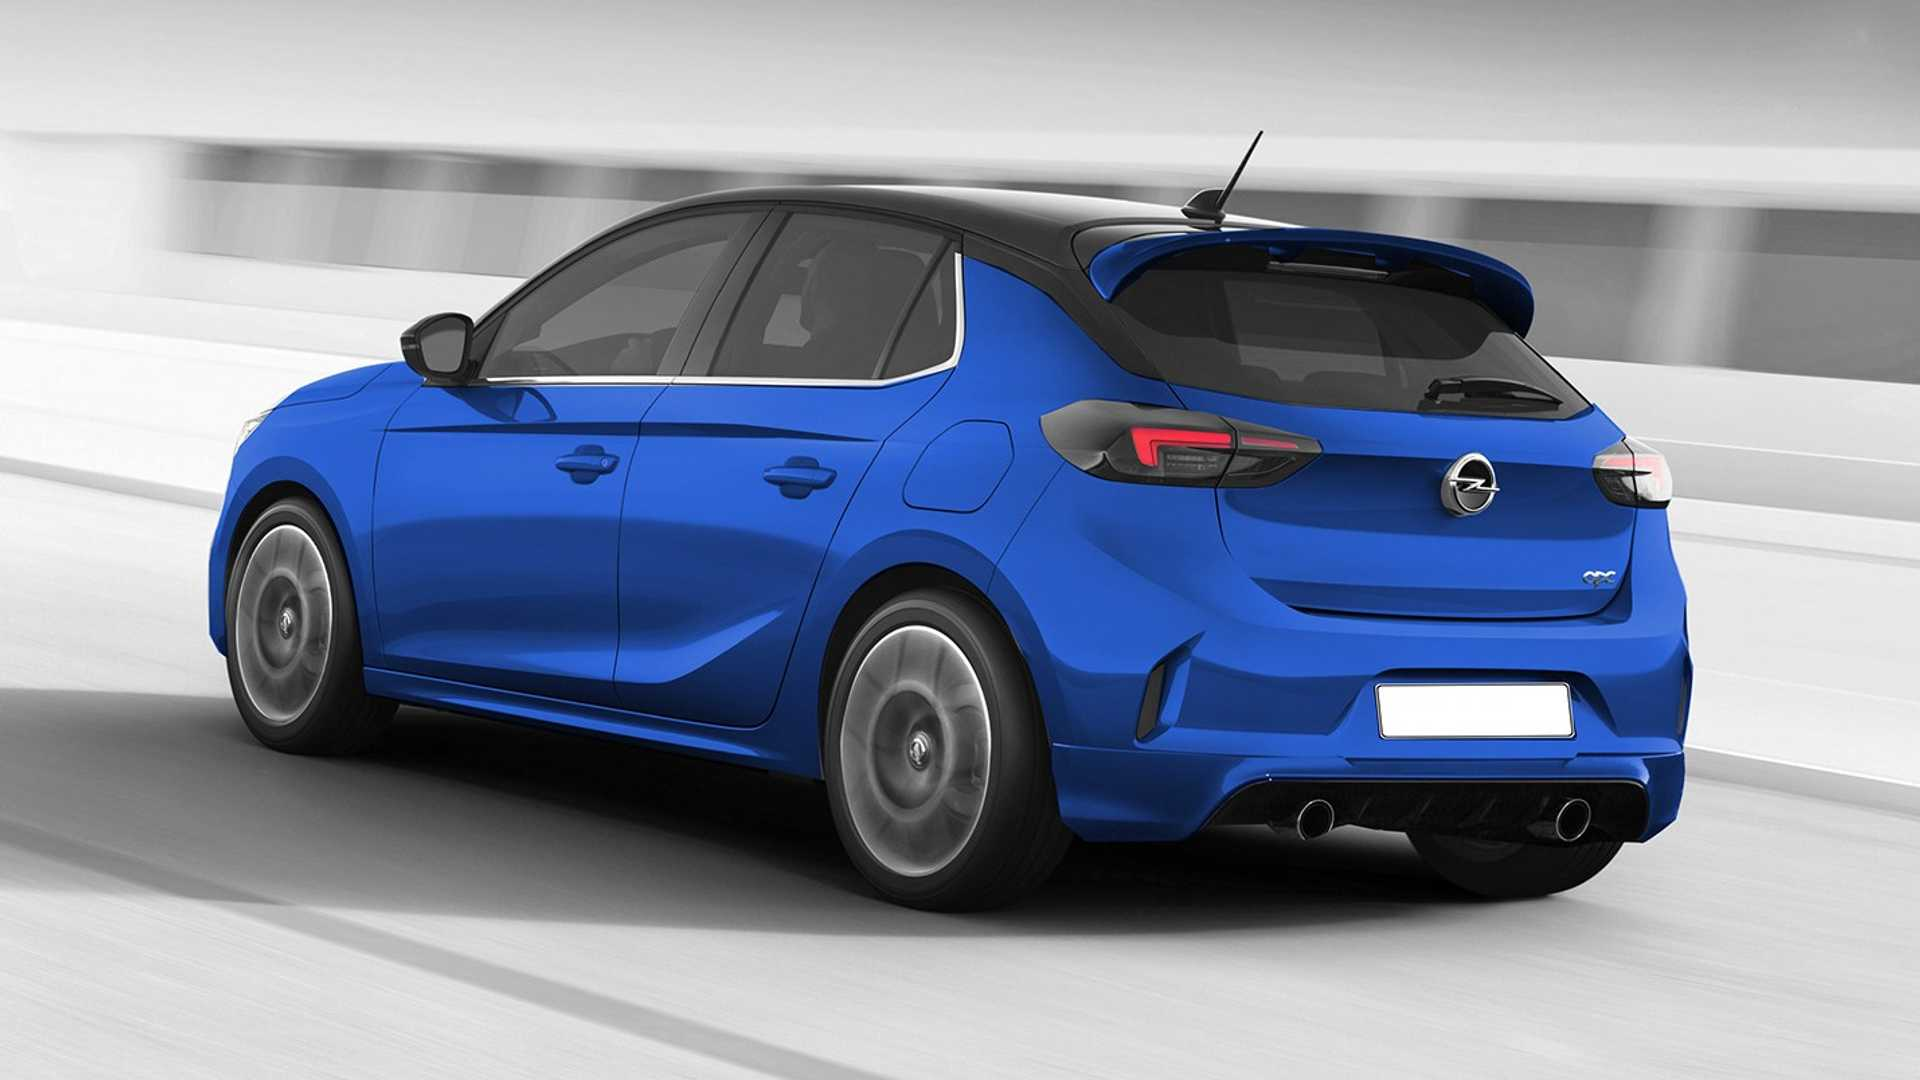 13 Best Review Opel Corsa 2020 Rendering Exterior and Interior for Opel Corsa 2020 Rendering